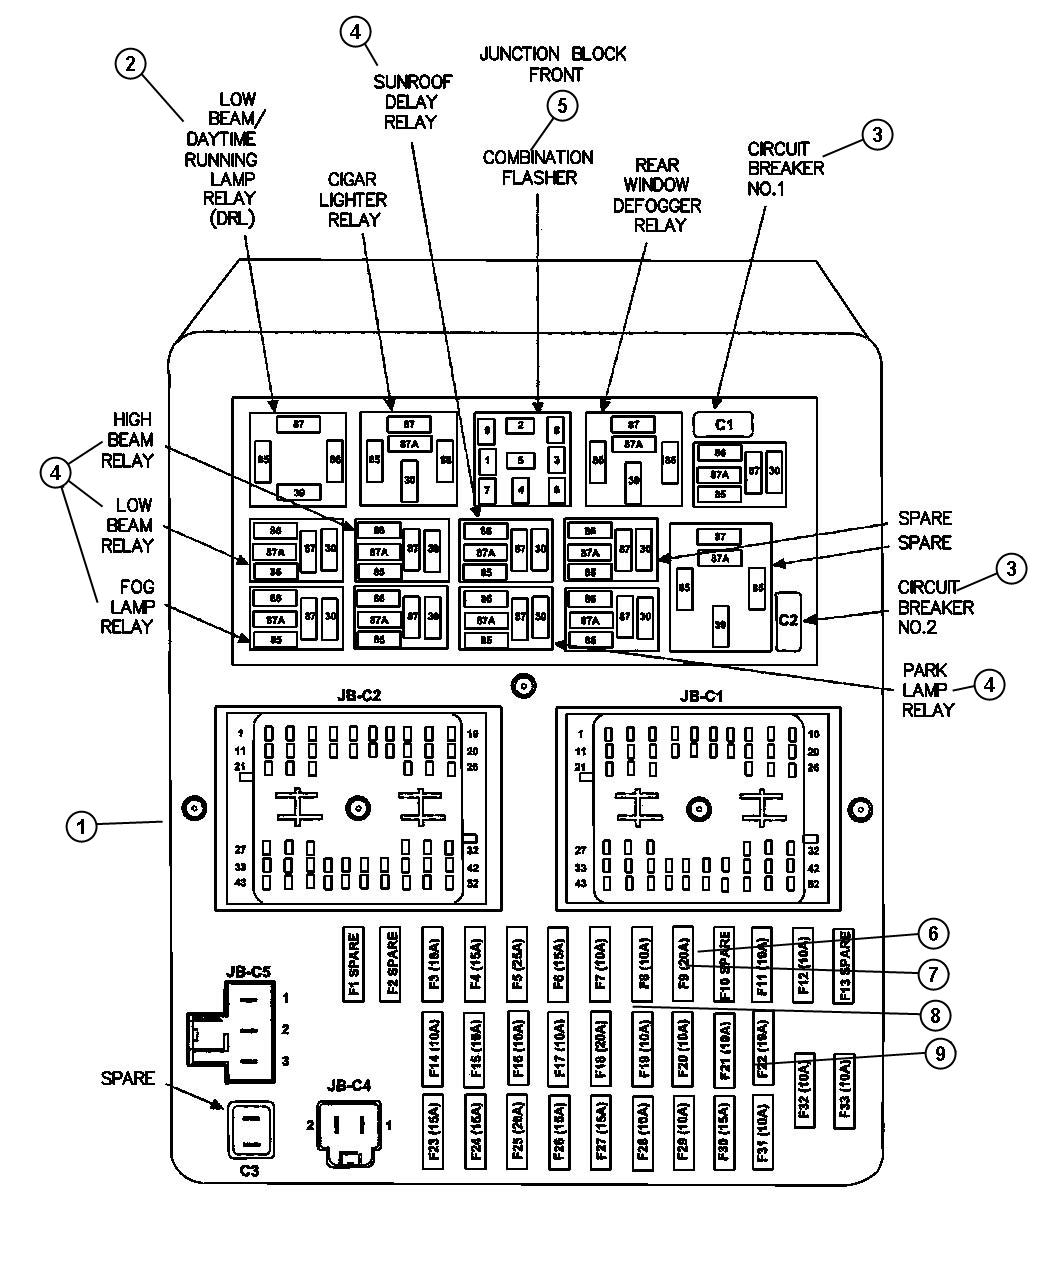 Windshield Wiper Fuse Location besides Gmc Ke Controller Wiring Diagram as well 1975 Chevy Silverado Fuel Line Diagram also 2000 Gmc Ke Line Diagram also Wiring Diagram For 1990 Gmc Sierra. on gmc ke switch wiring diagram